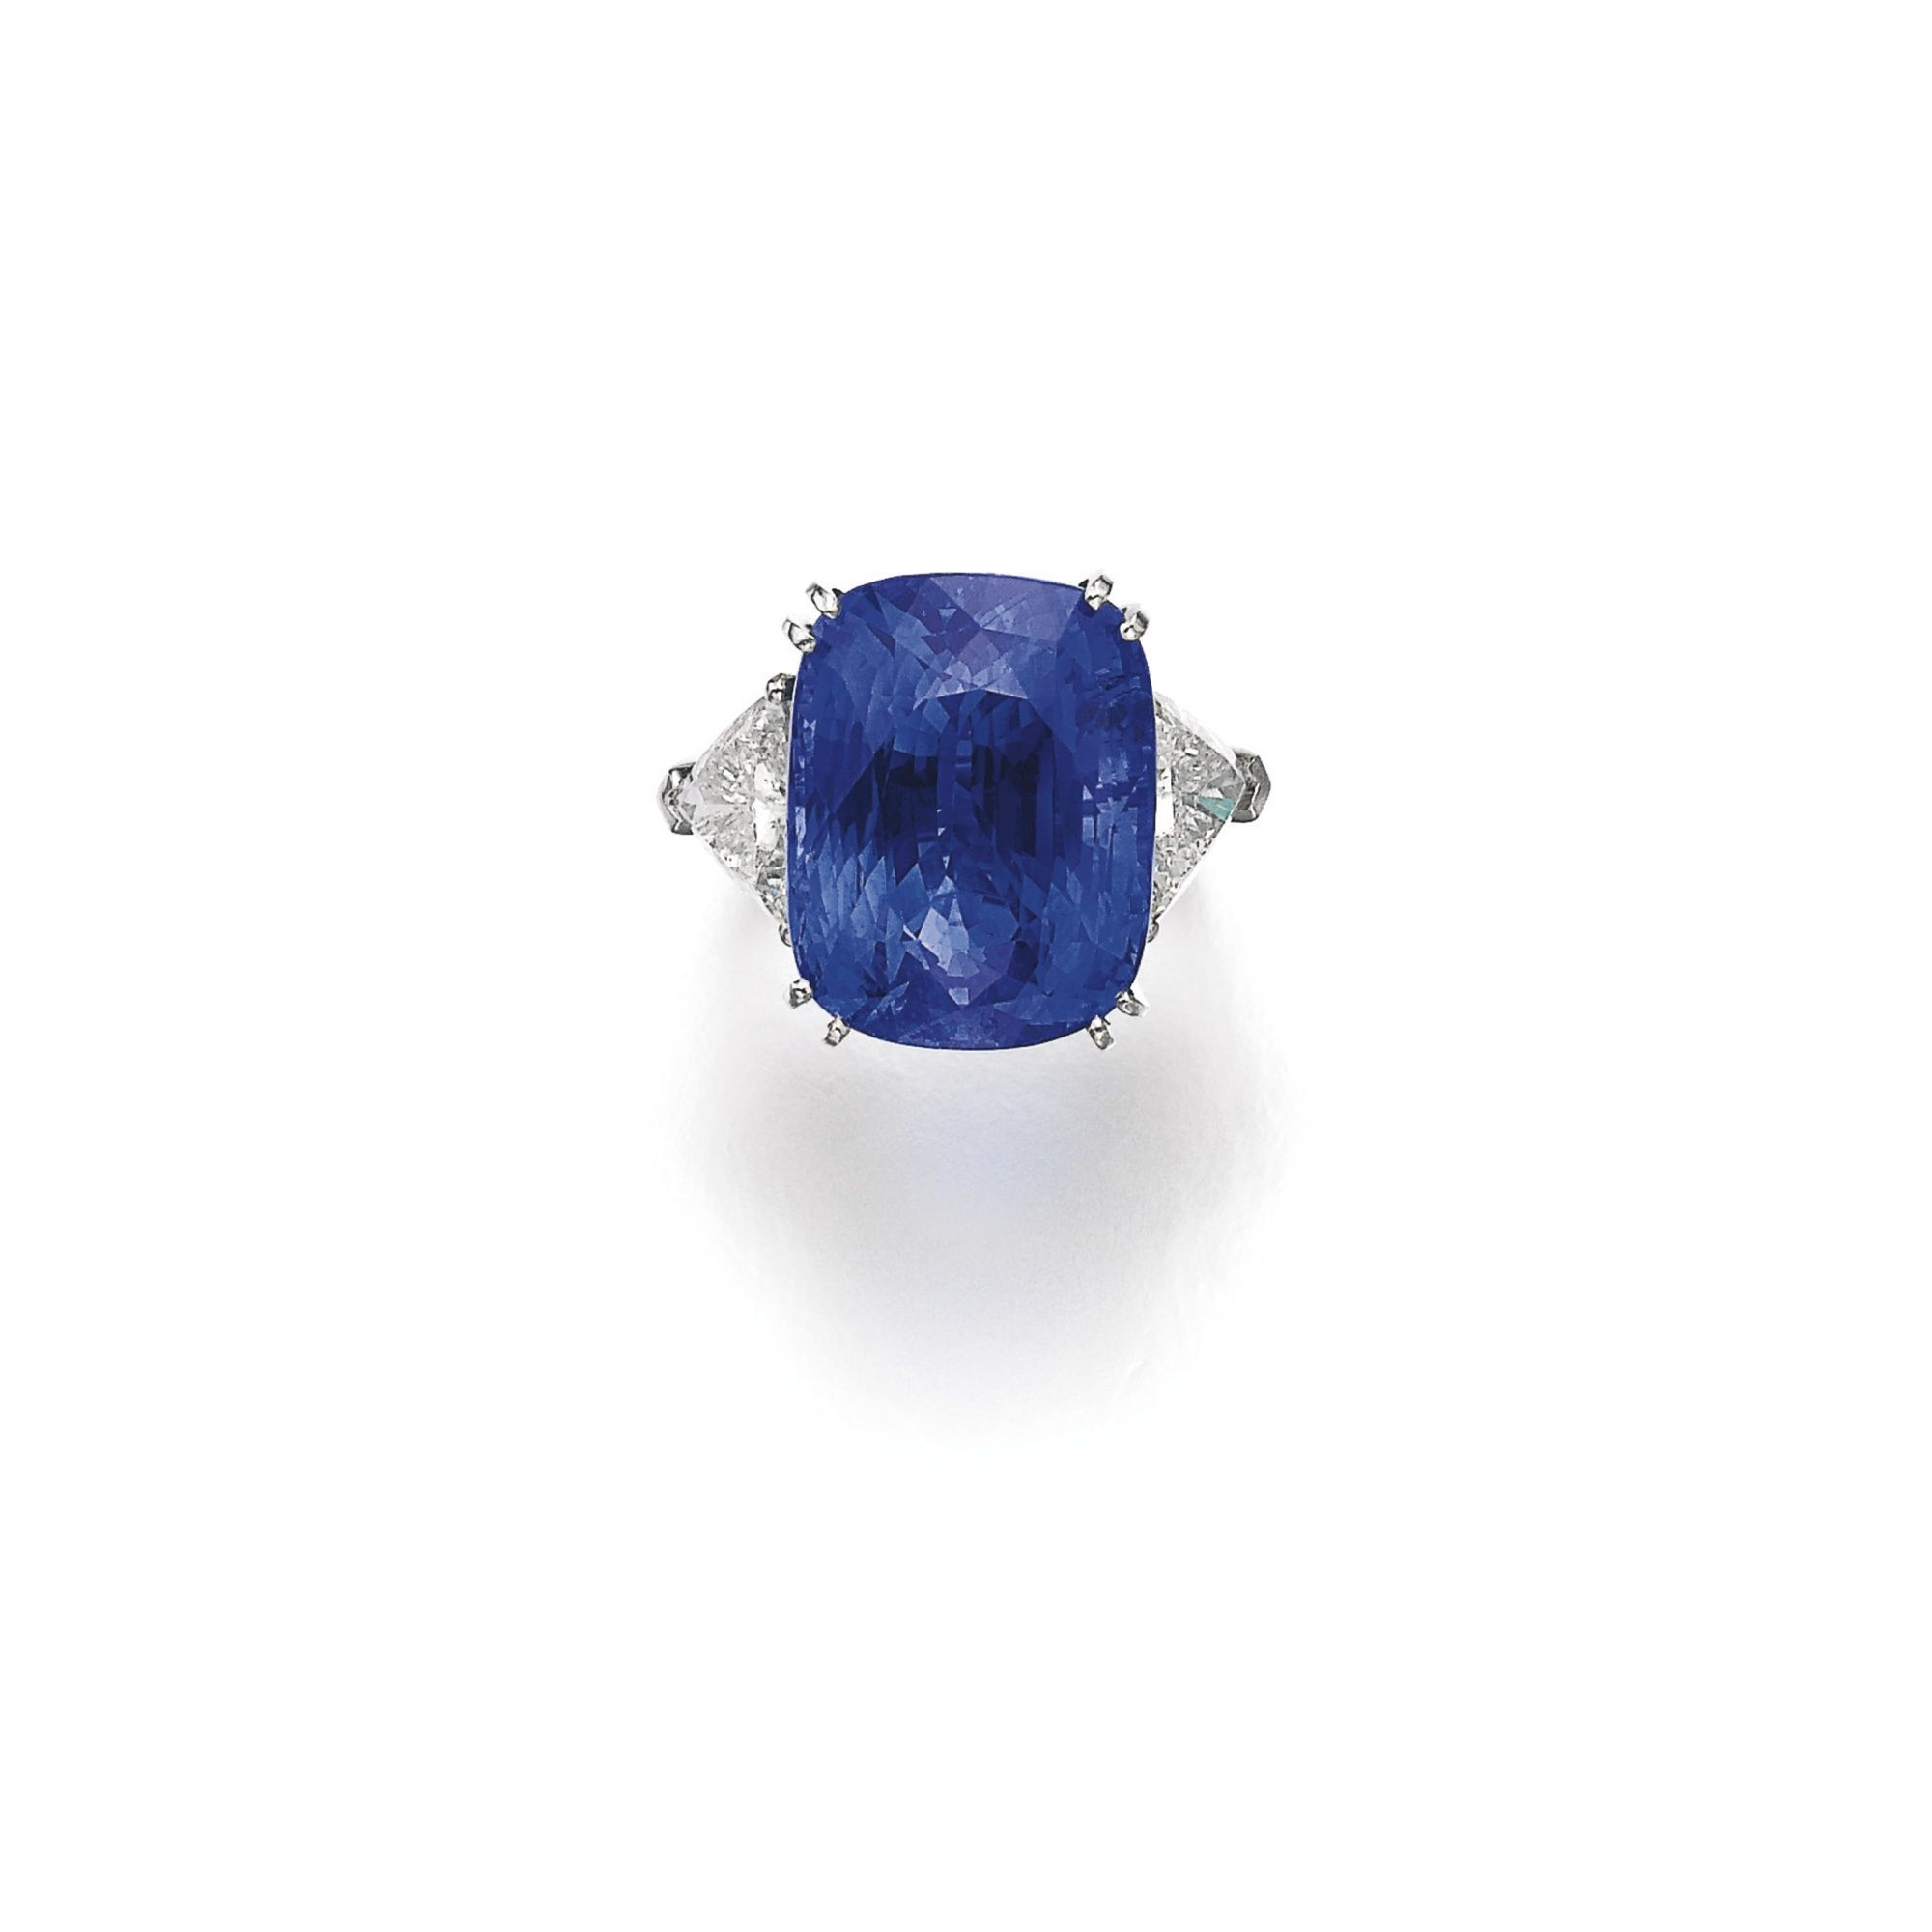 Sapphire And Diamond Ring Set With A Cushion Shaped Sapphire Weighing 36 13 Carats Ceylon Origin No Heat Between Triangular Indigo Jewelry Sapphire Rings